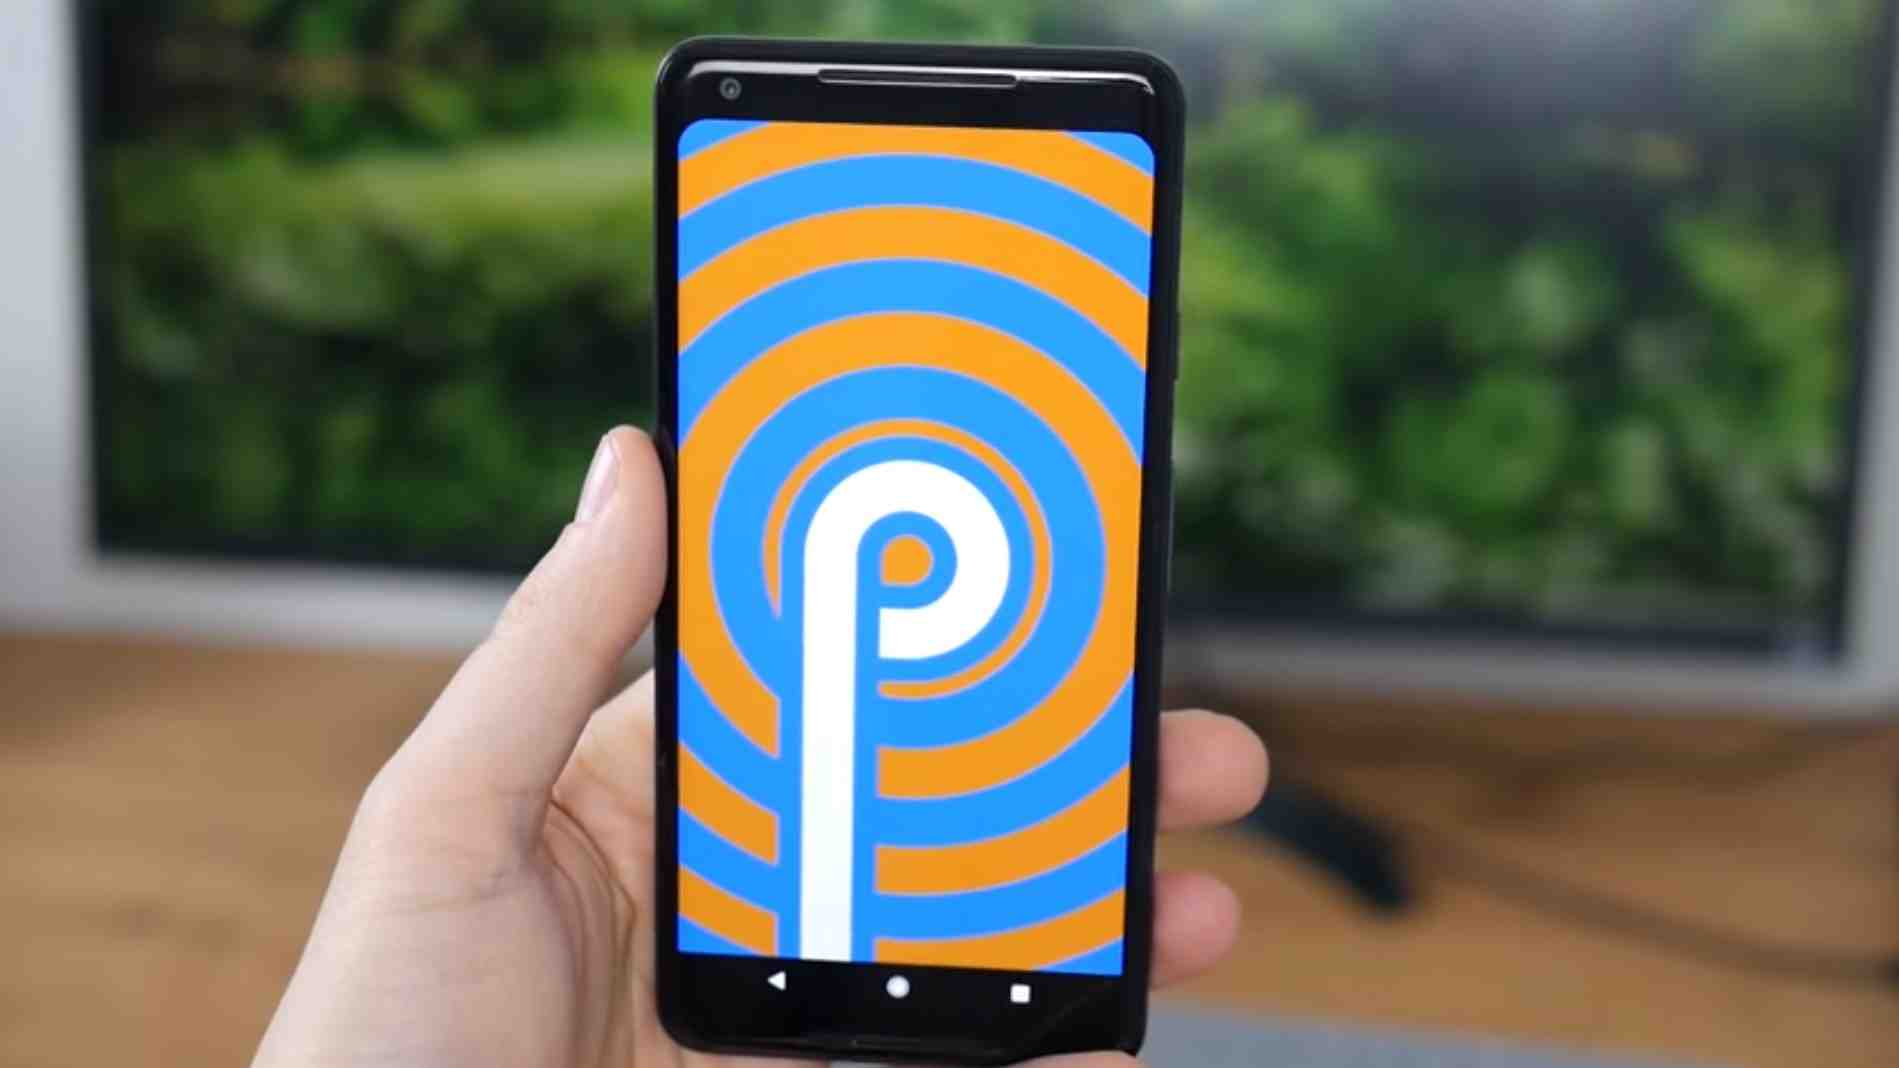 Android pie 9.0